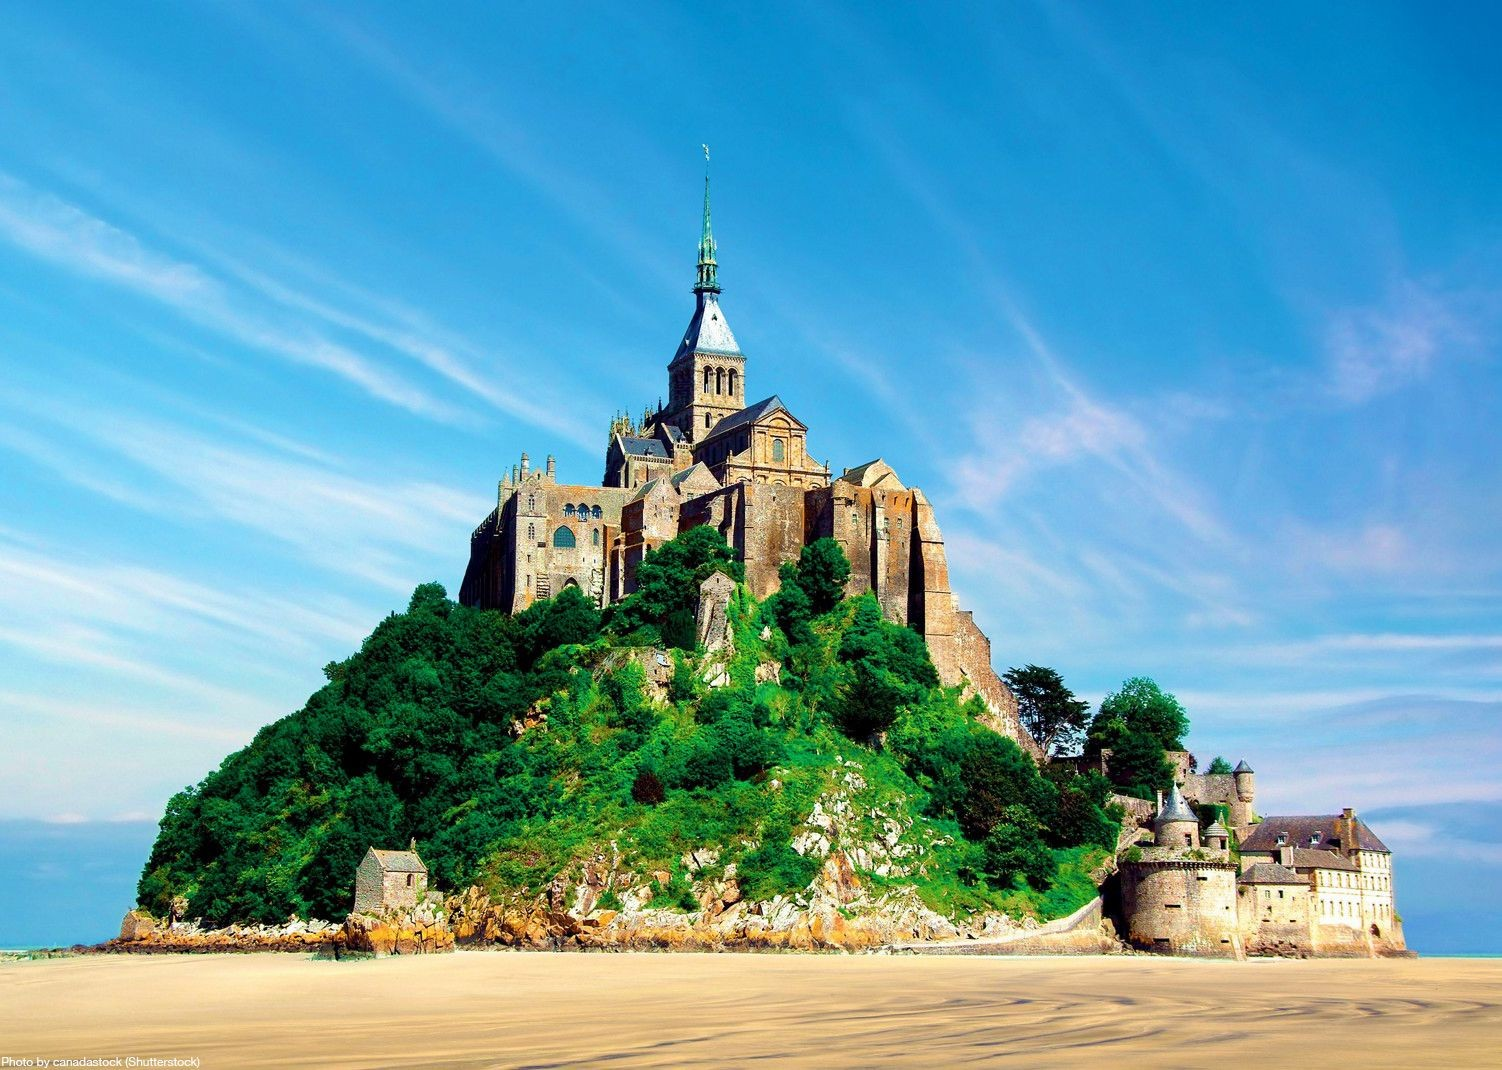 le-mont-st-michel-castle-france-self-guided-cycling-tour.jpg - France - Brittany - Self-Guided Leisure Cycling Holiday - Leisure Cycling